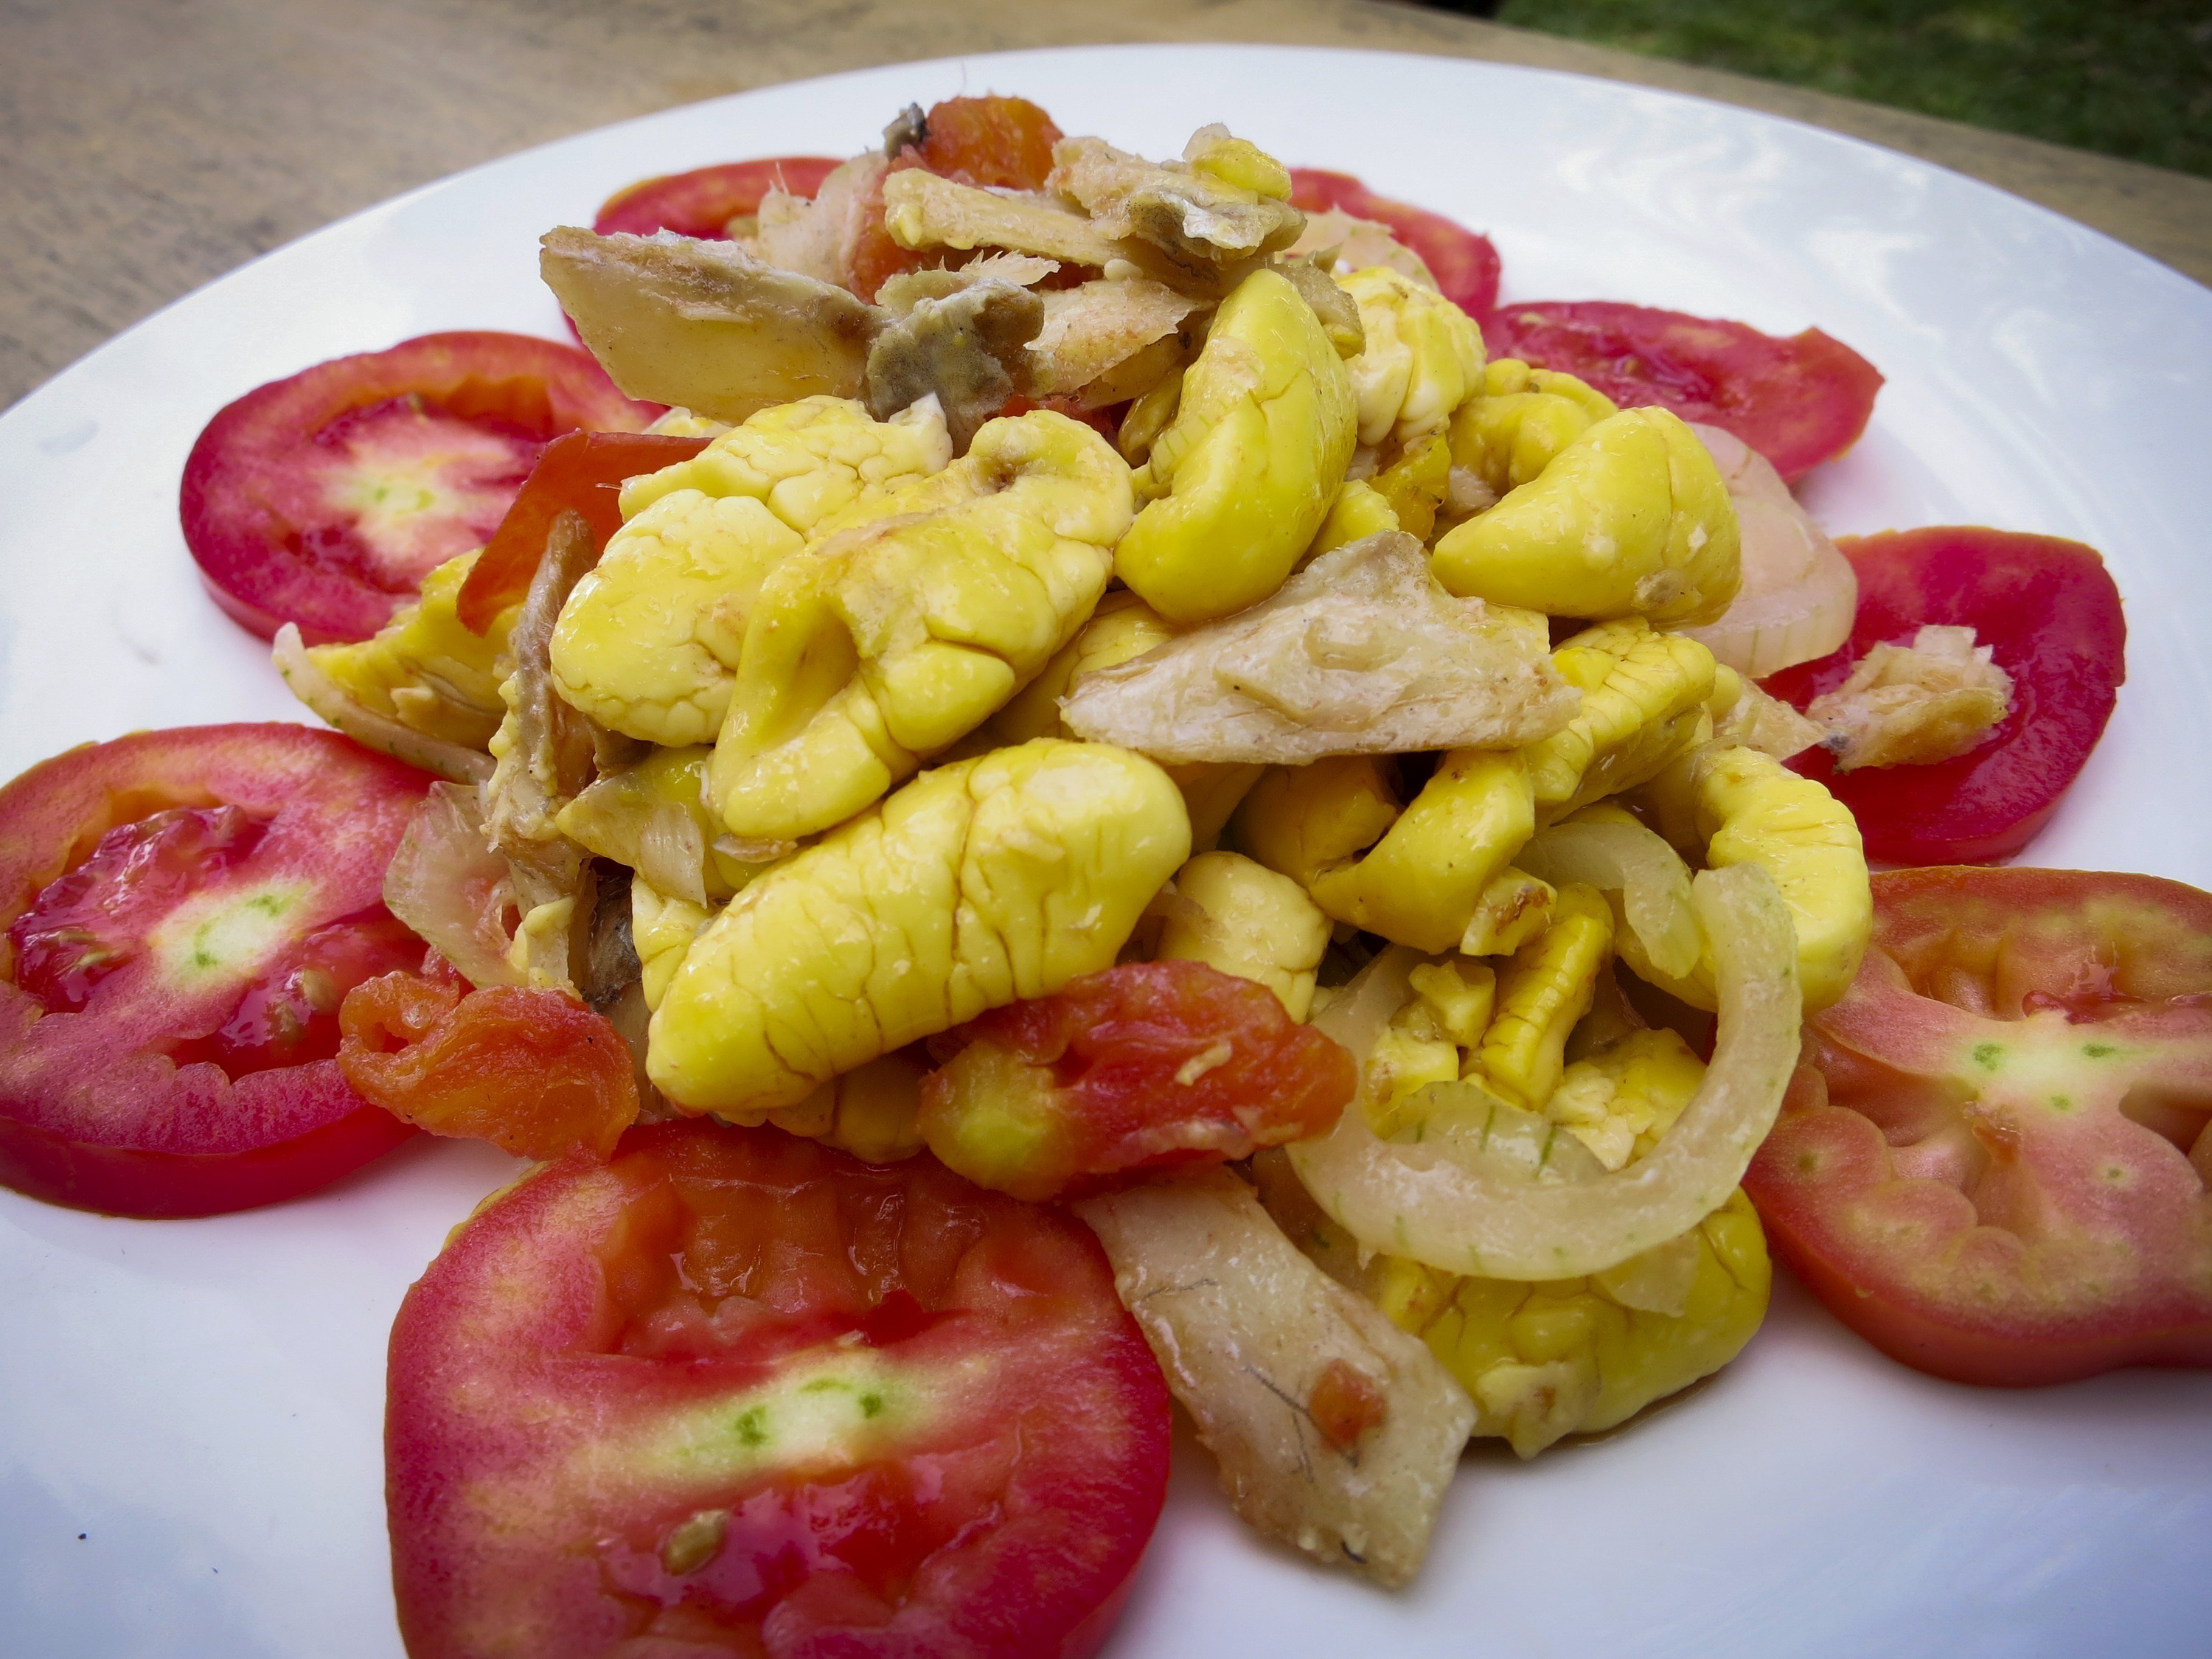 Ackee and salt cod.